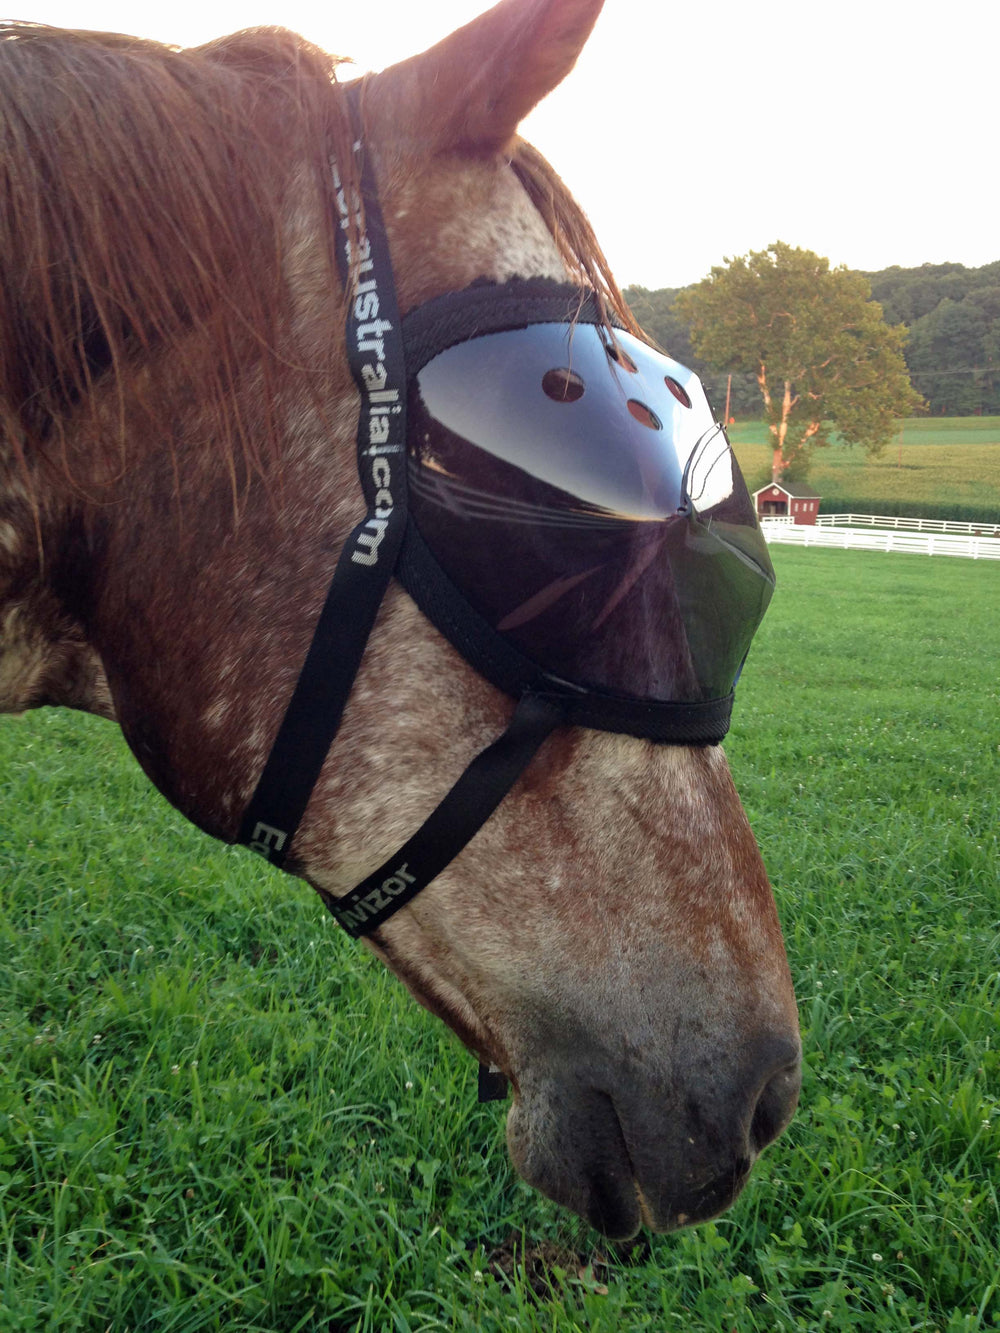 Recovery Vizor Medical UV Eye Protection for Horses